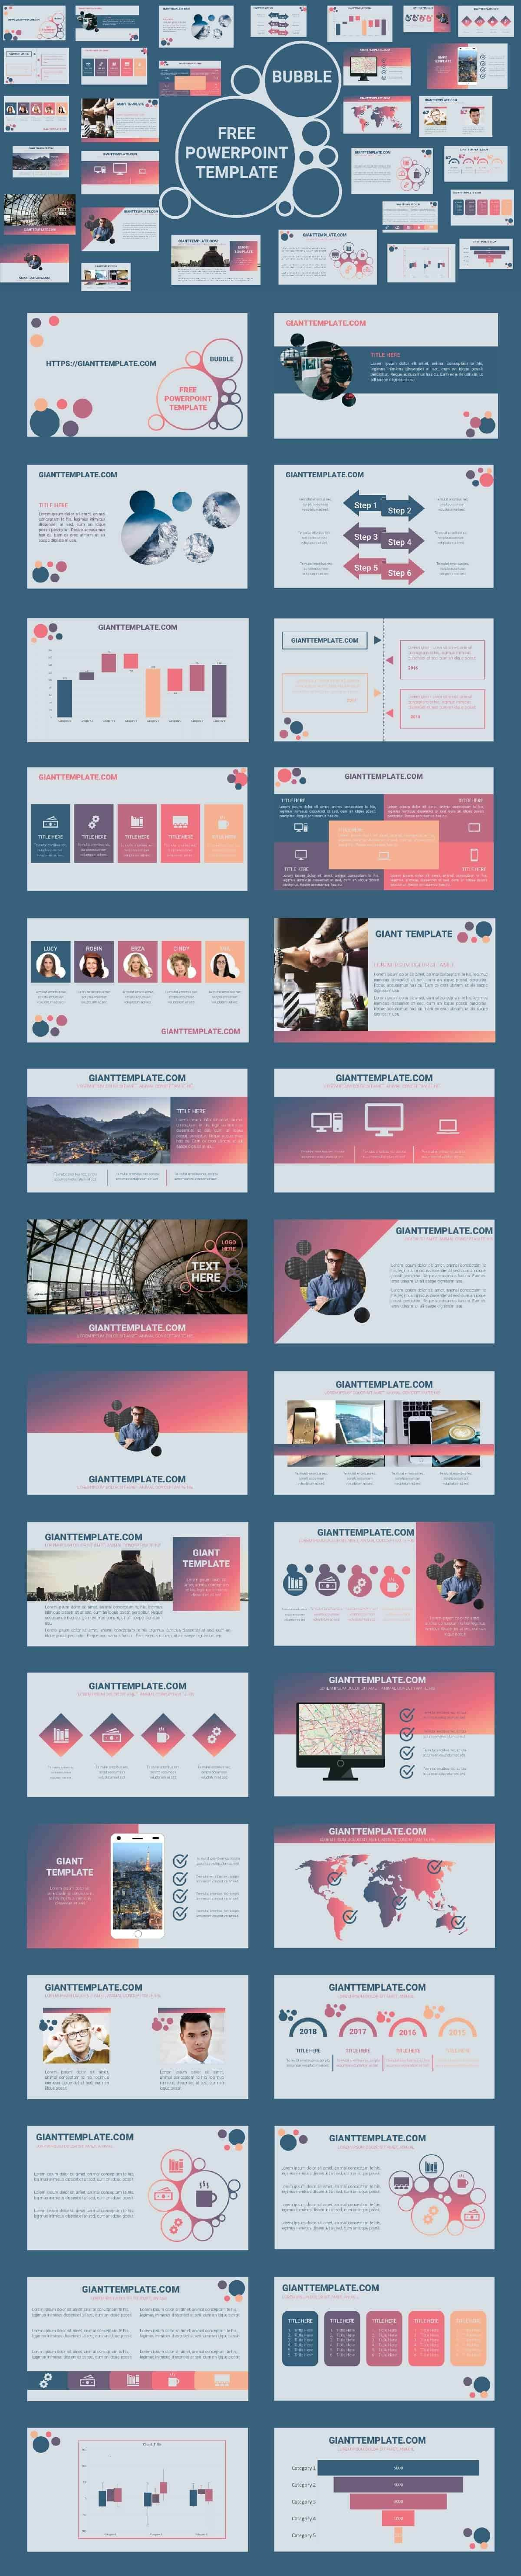 Free Download Morph Powerpoint Template Powerpoint Template Free Free Powerpoint Templates Download Powerpoint Templates